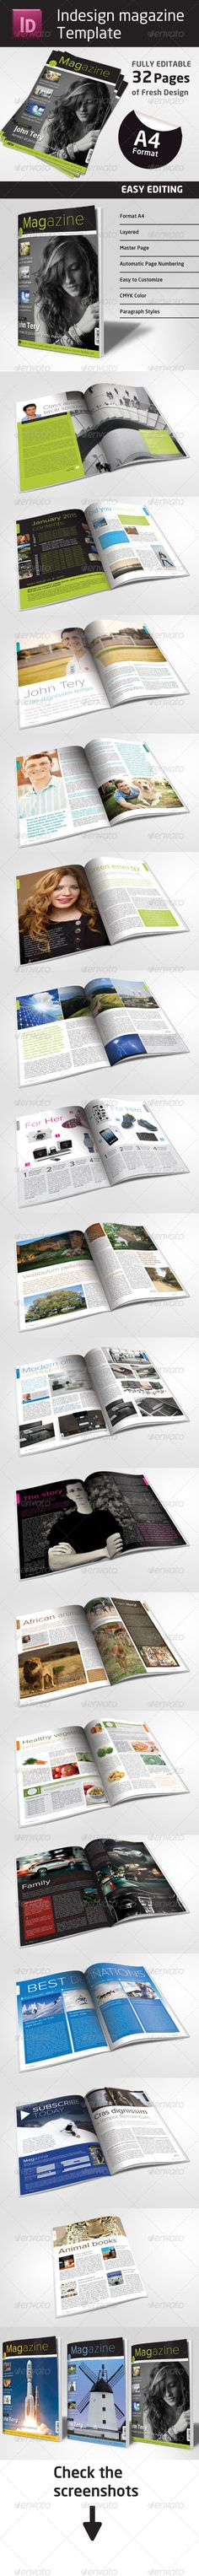 38 best sports program images on pinterest magazine design 32 pages indesign magazine template in a4 format graphicriver this indesign fresh nice looking maxwellsz